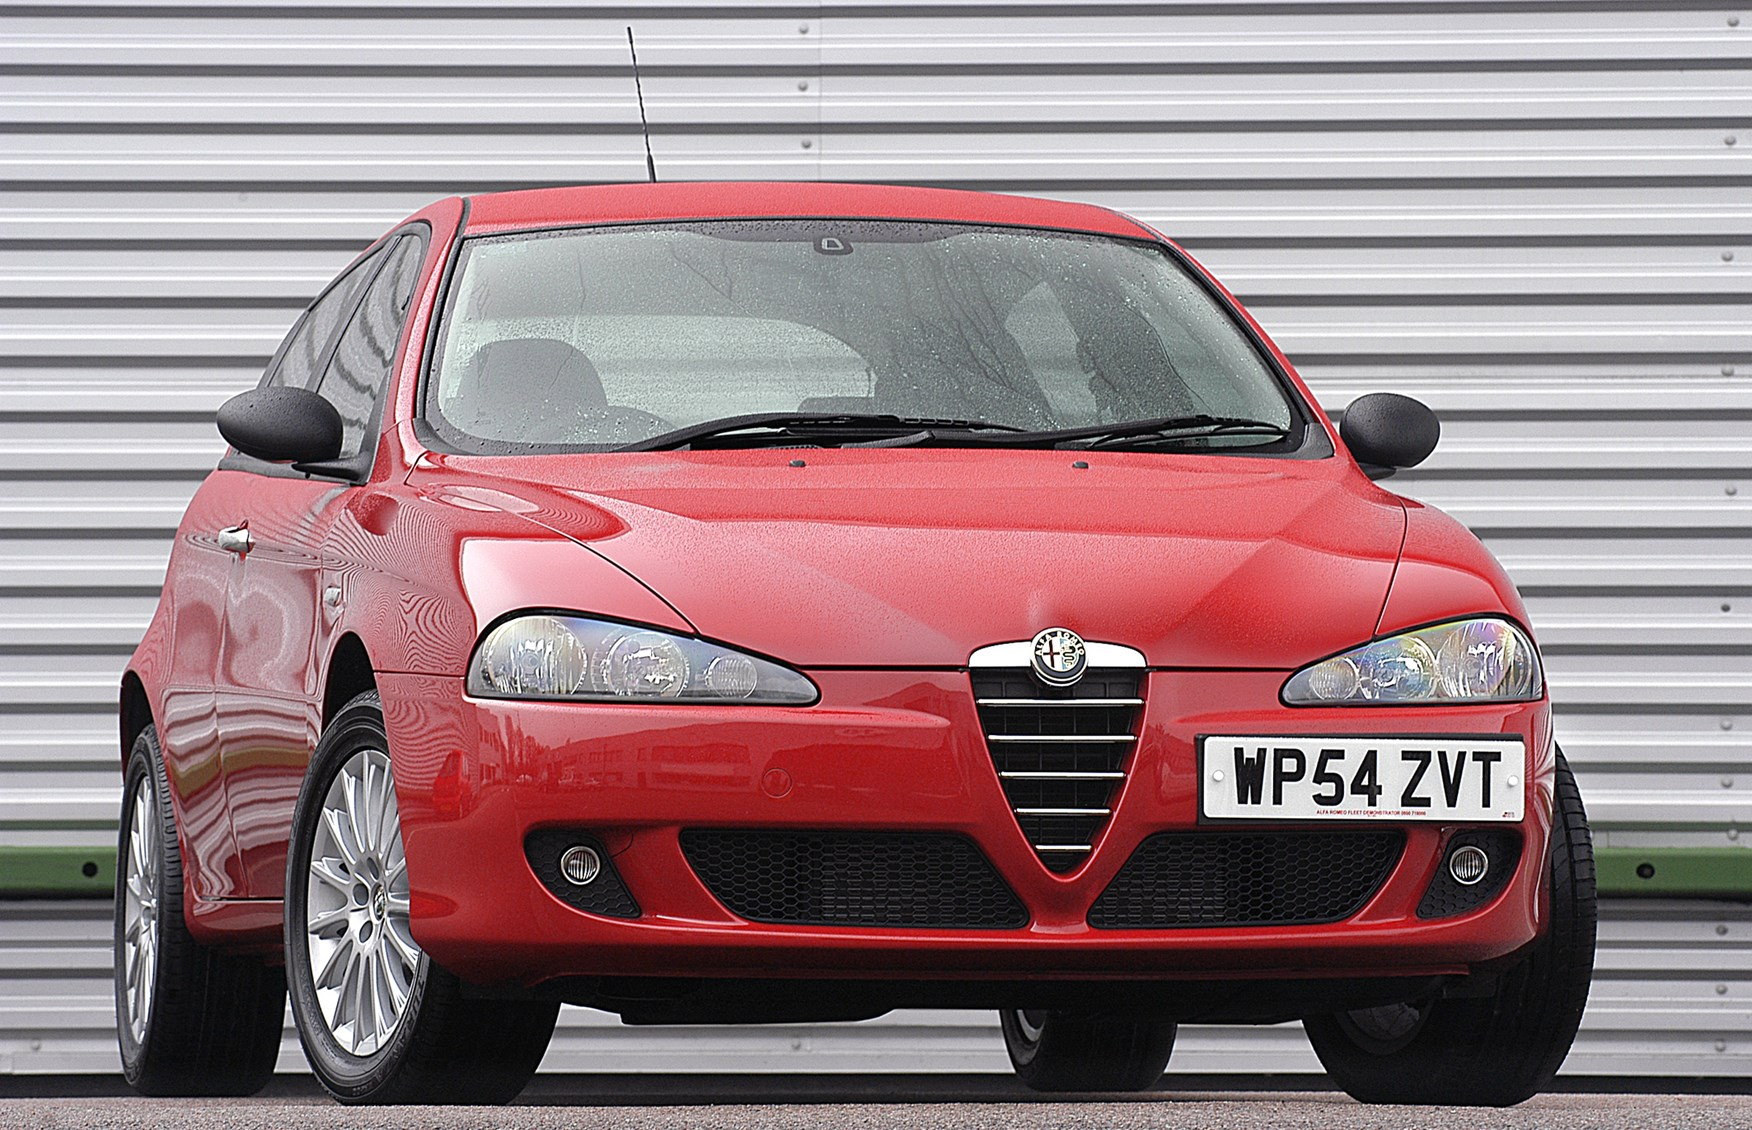 Alfa Romeo 147 Hatchback Review 2001 2009 Parkers Wiring Diagram